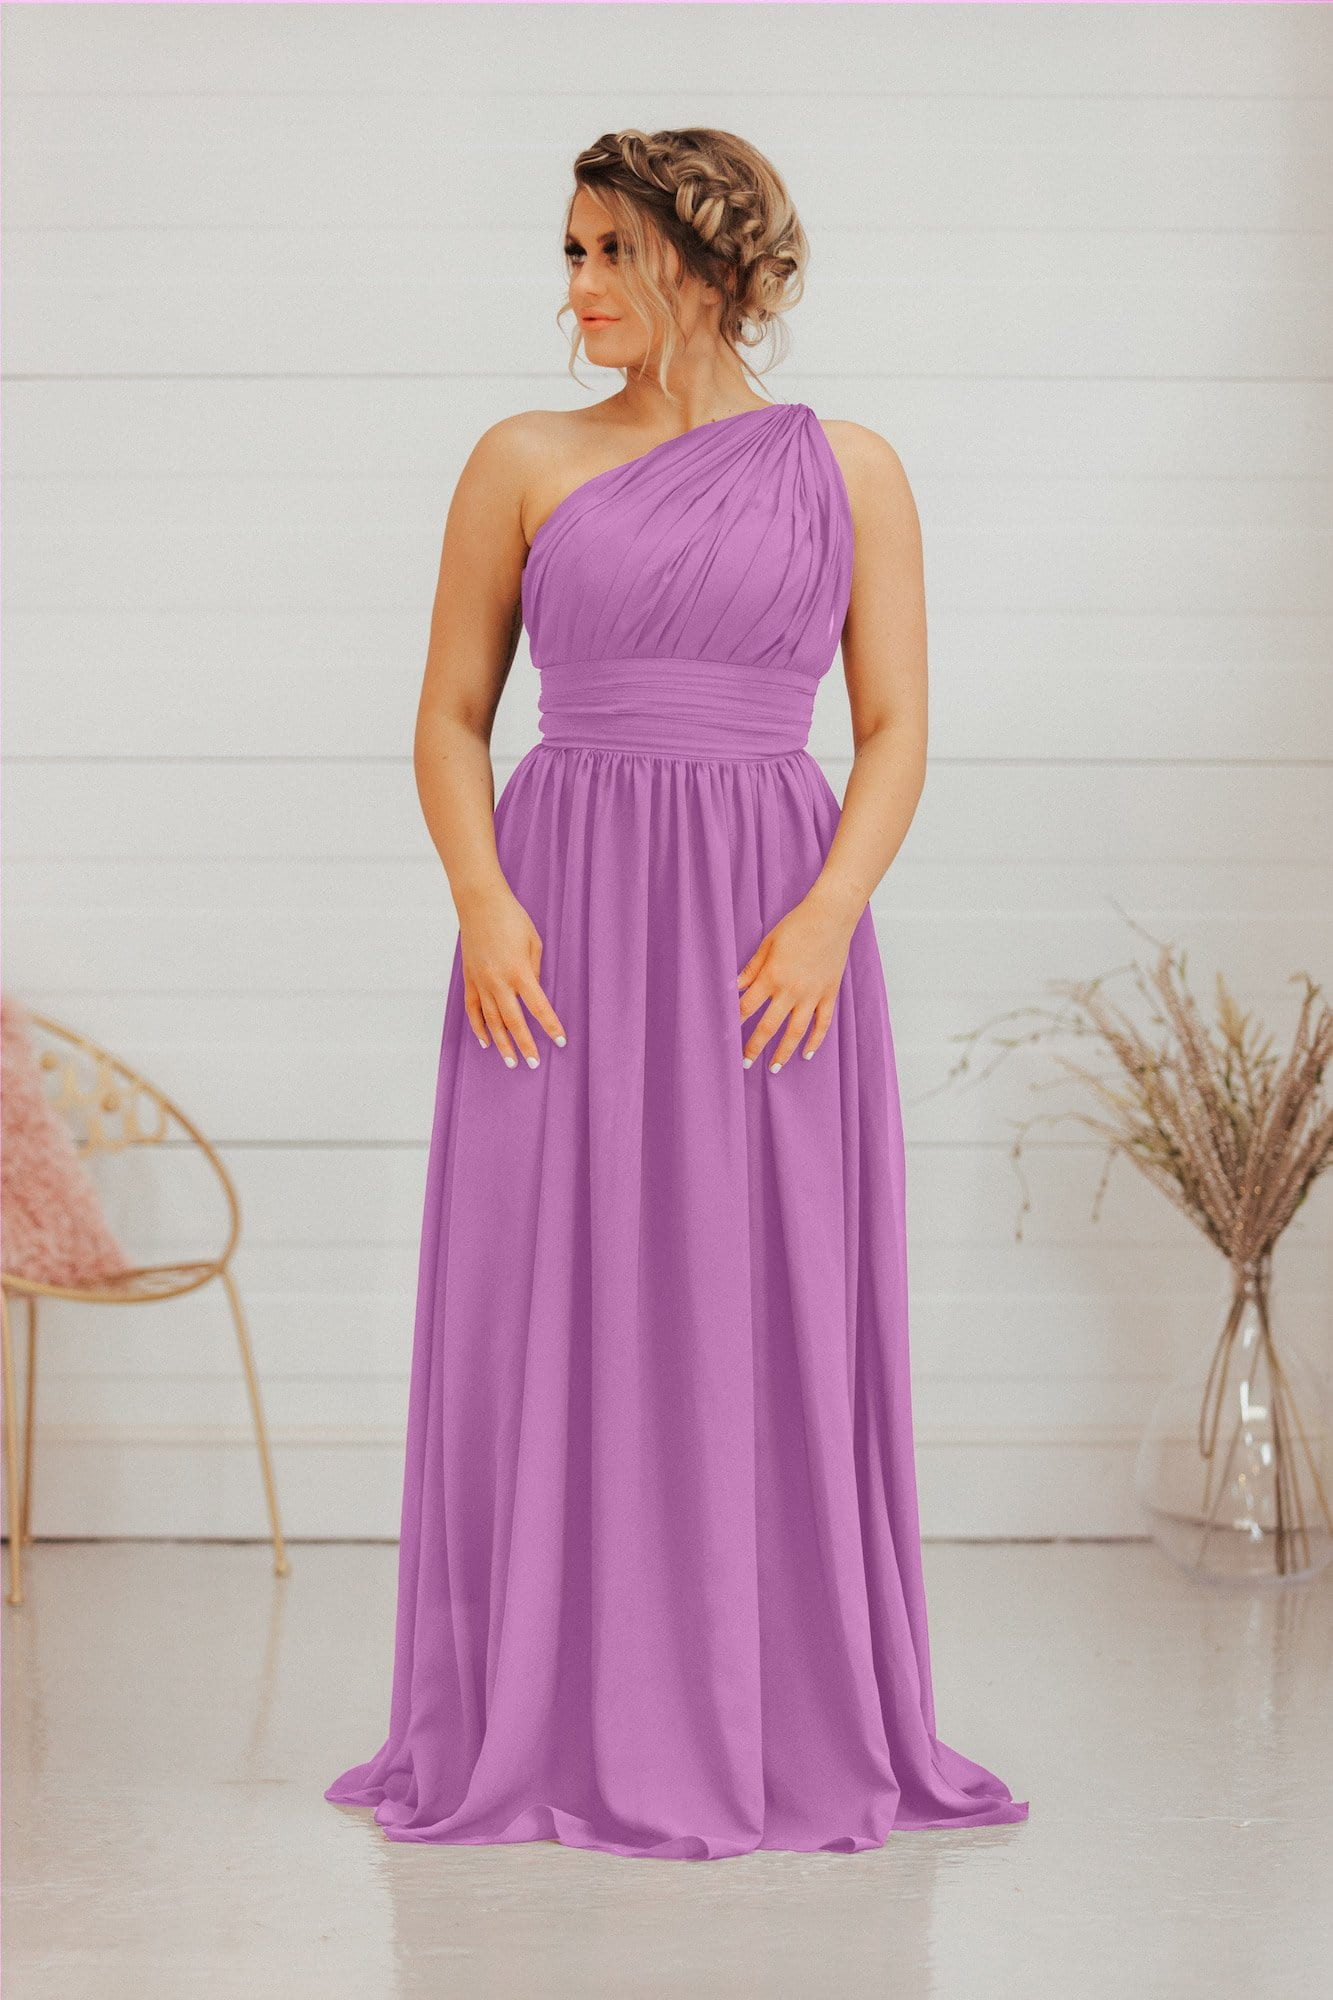 Harper Dress | 1 Strap A Line Bridesmaid Dress - That Special Day Bridal Warehouse